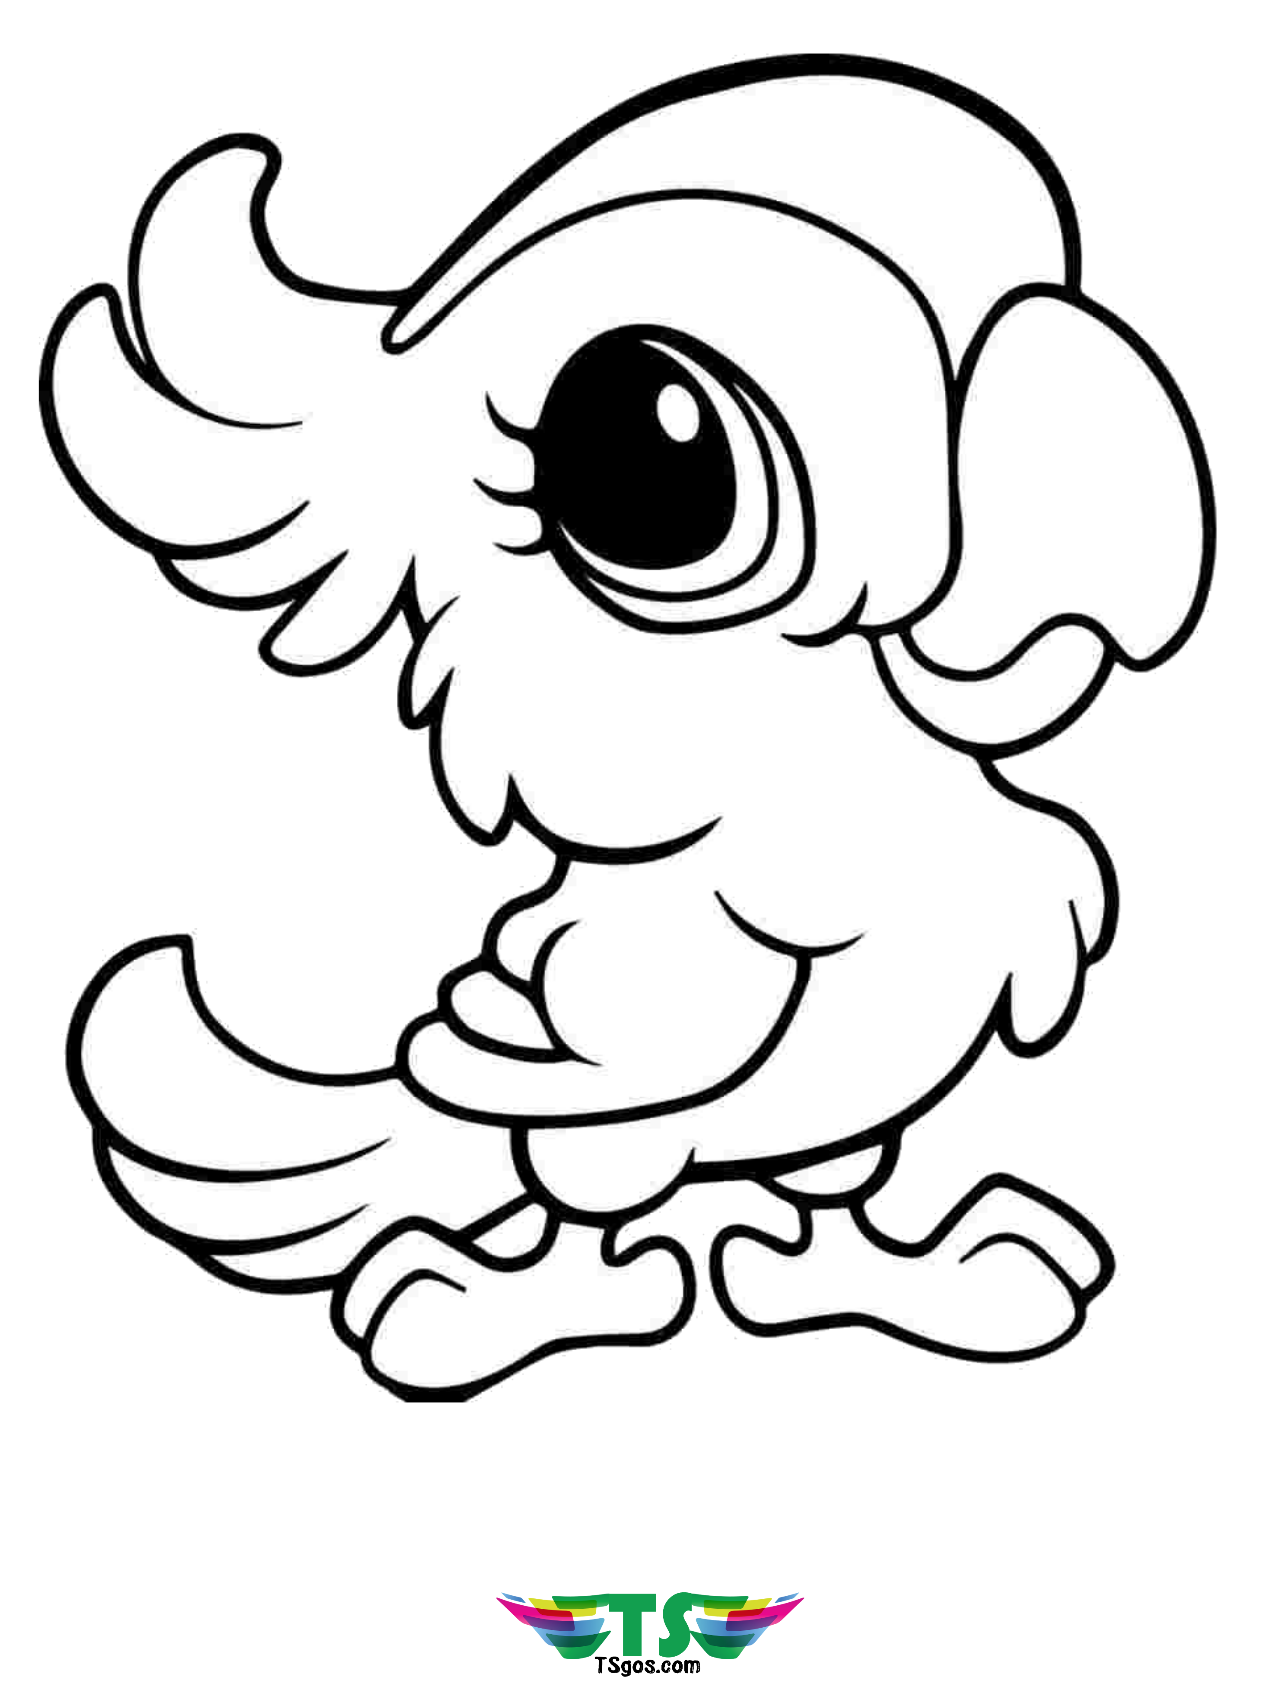 pictures of birds to color cute bird coloring pages to color of birds pictures